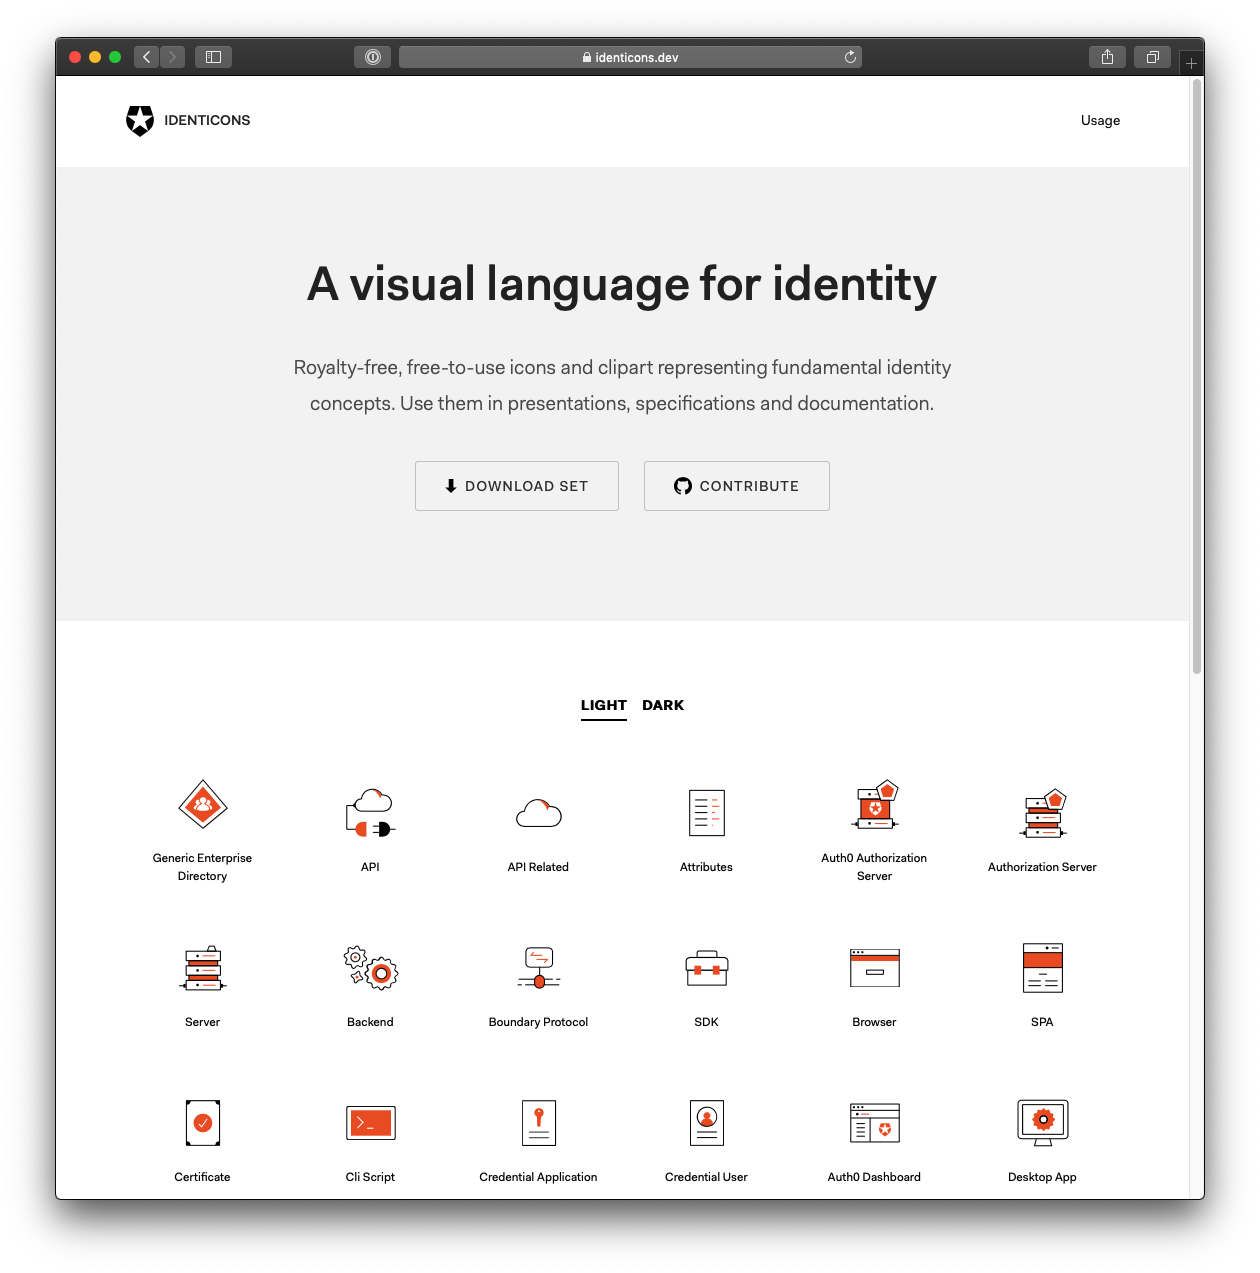 An image of identicons.dev home page